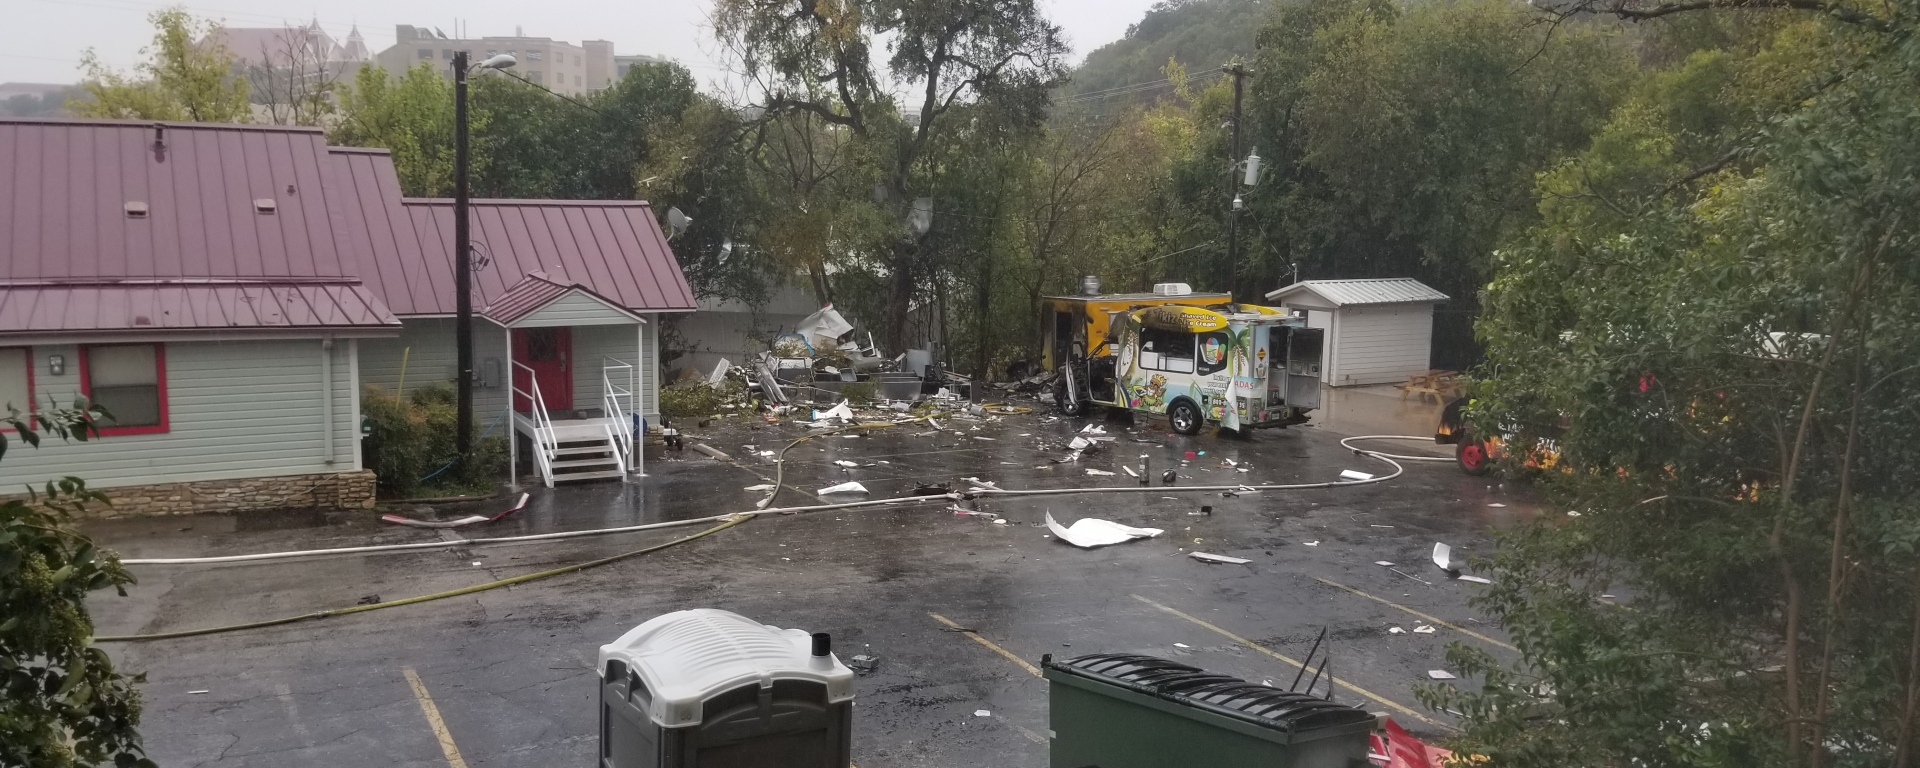 A parking lot with metal and trash scattered everywhere.